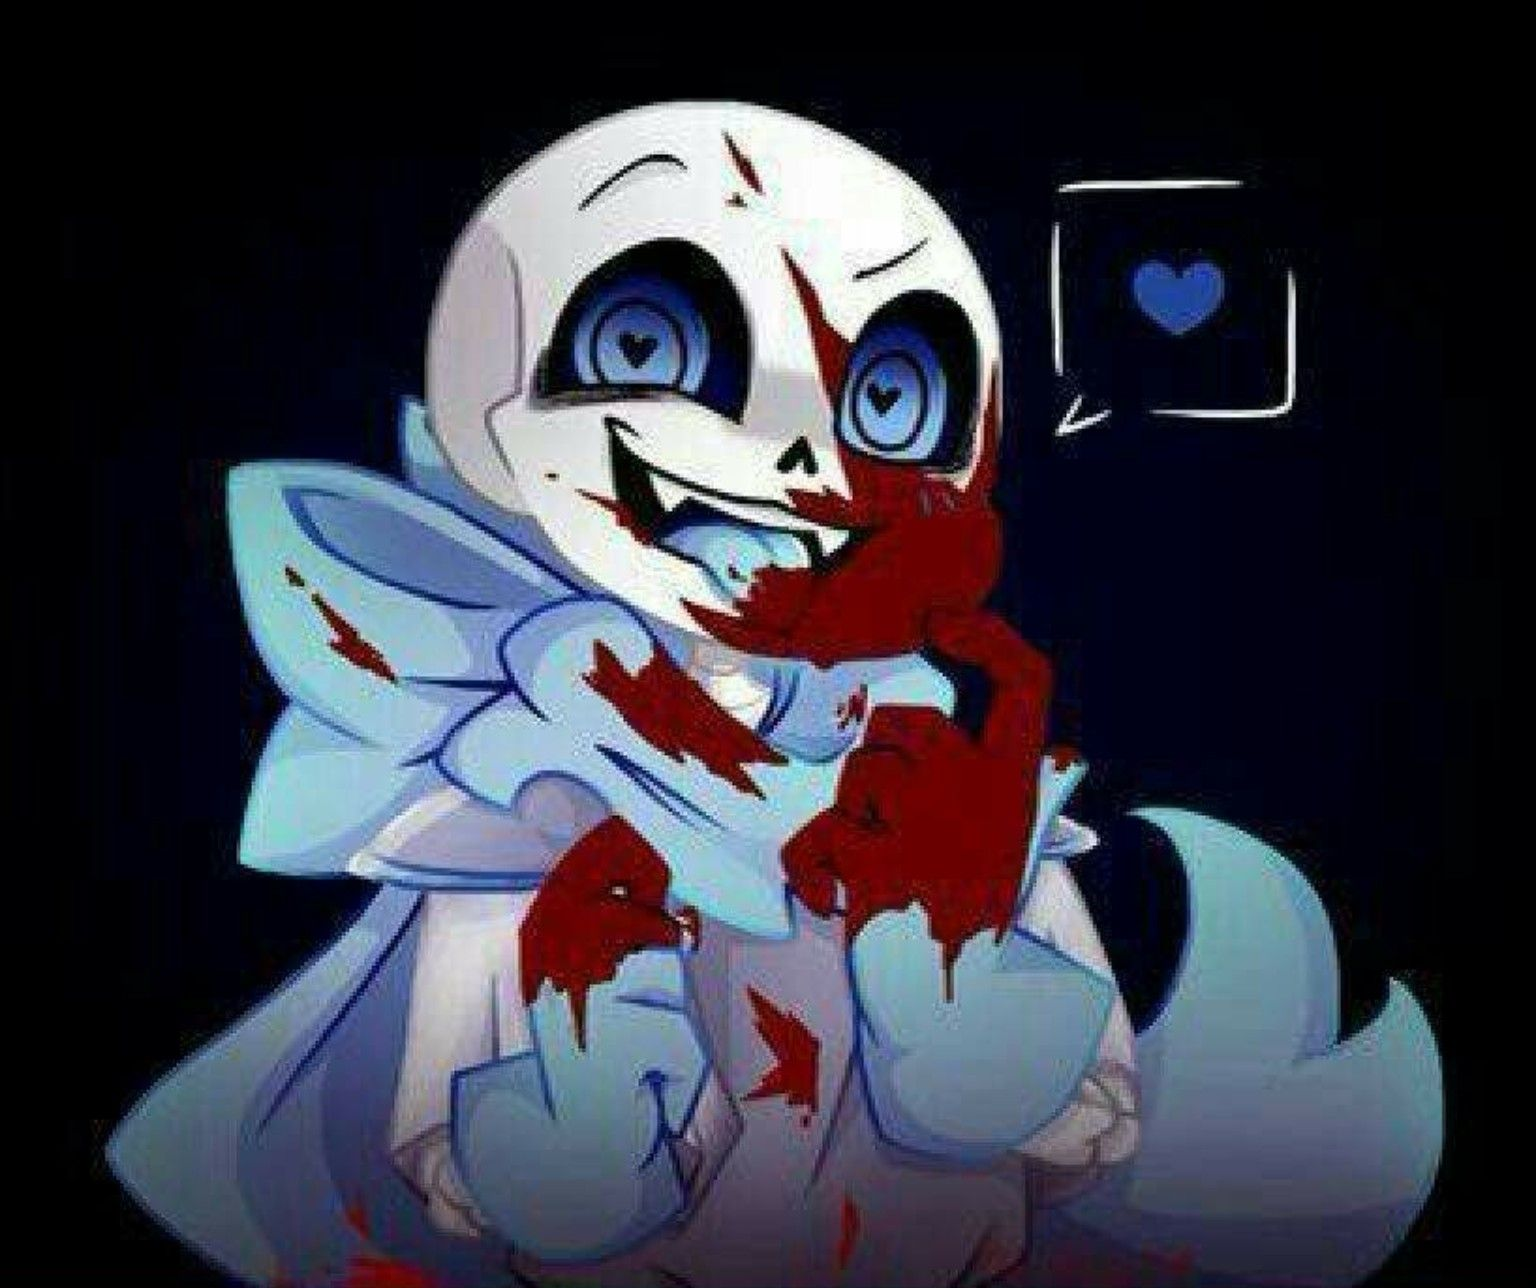 Pin by JuneZBug on Sans Au cwap:3 | Underswap, Dream sans